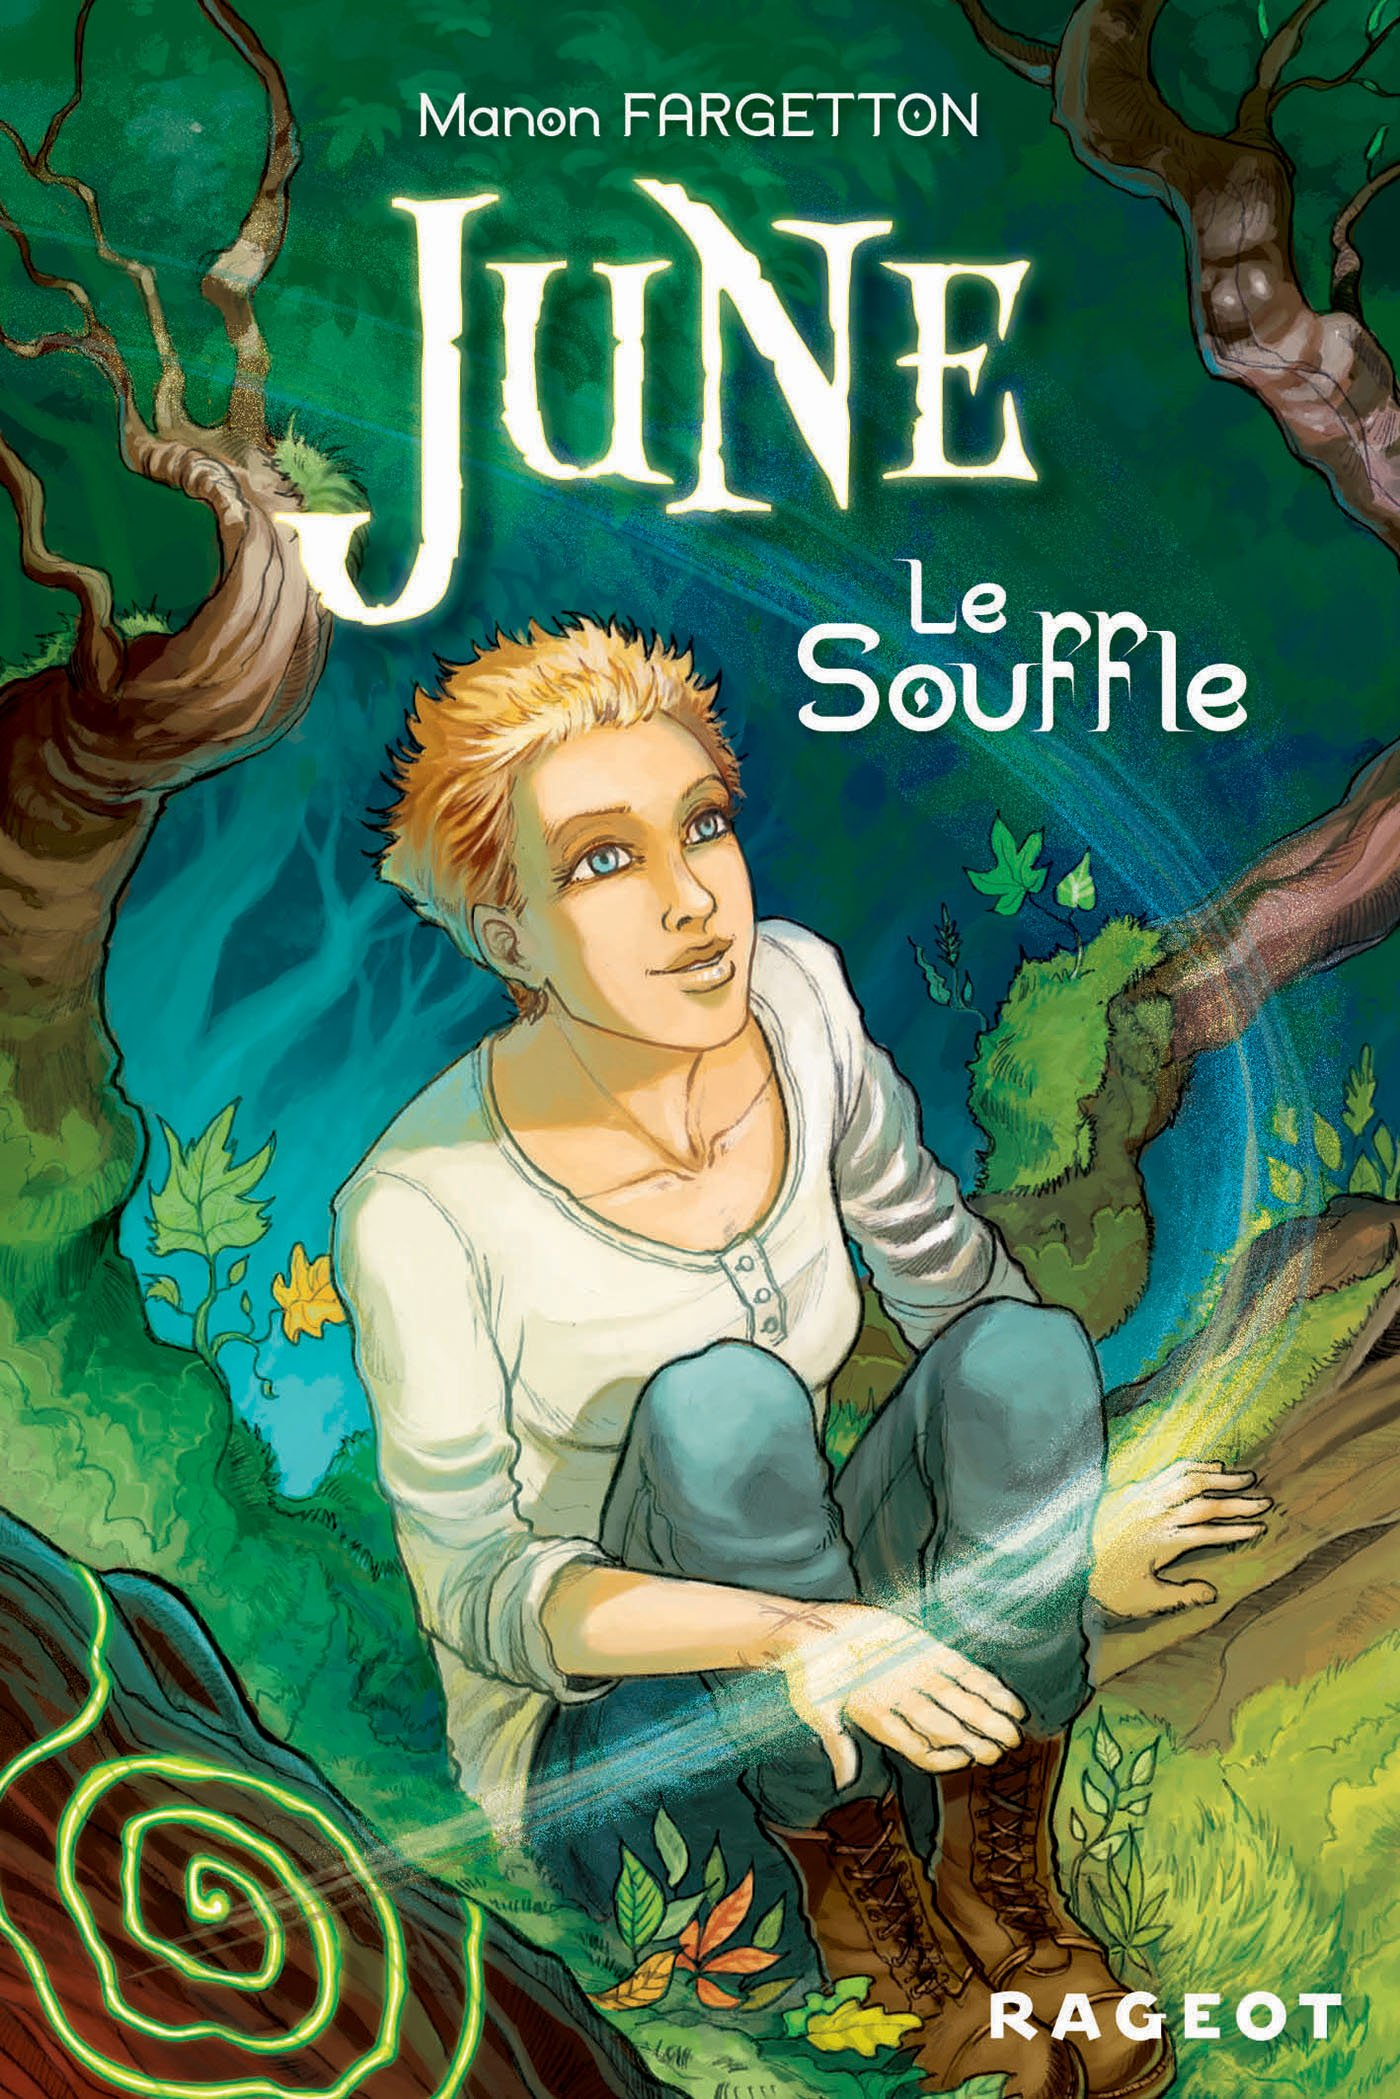 Amazon.fr - JUNE TOME 1 - LE SOUFFLE - Fargetton, Manon - Livres